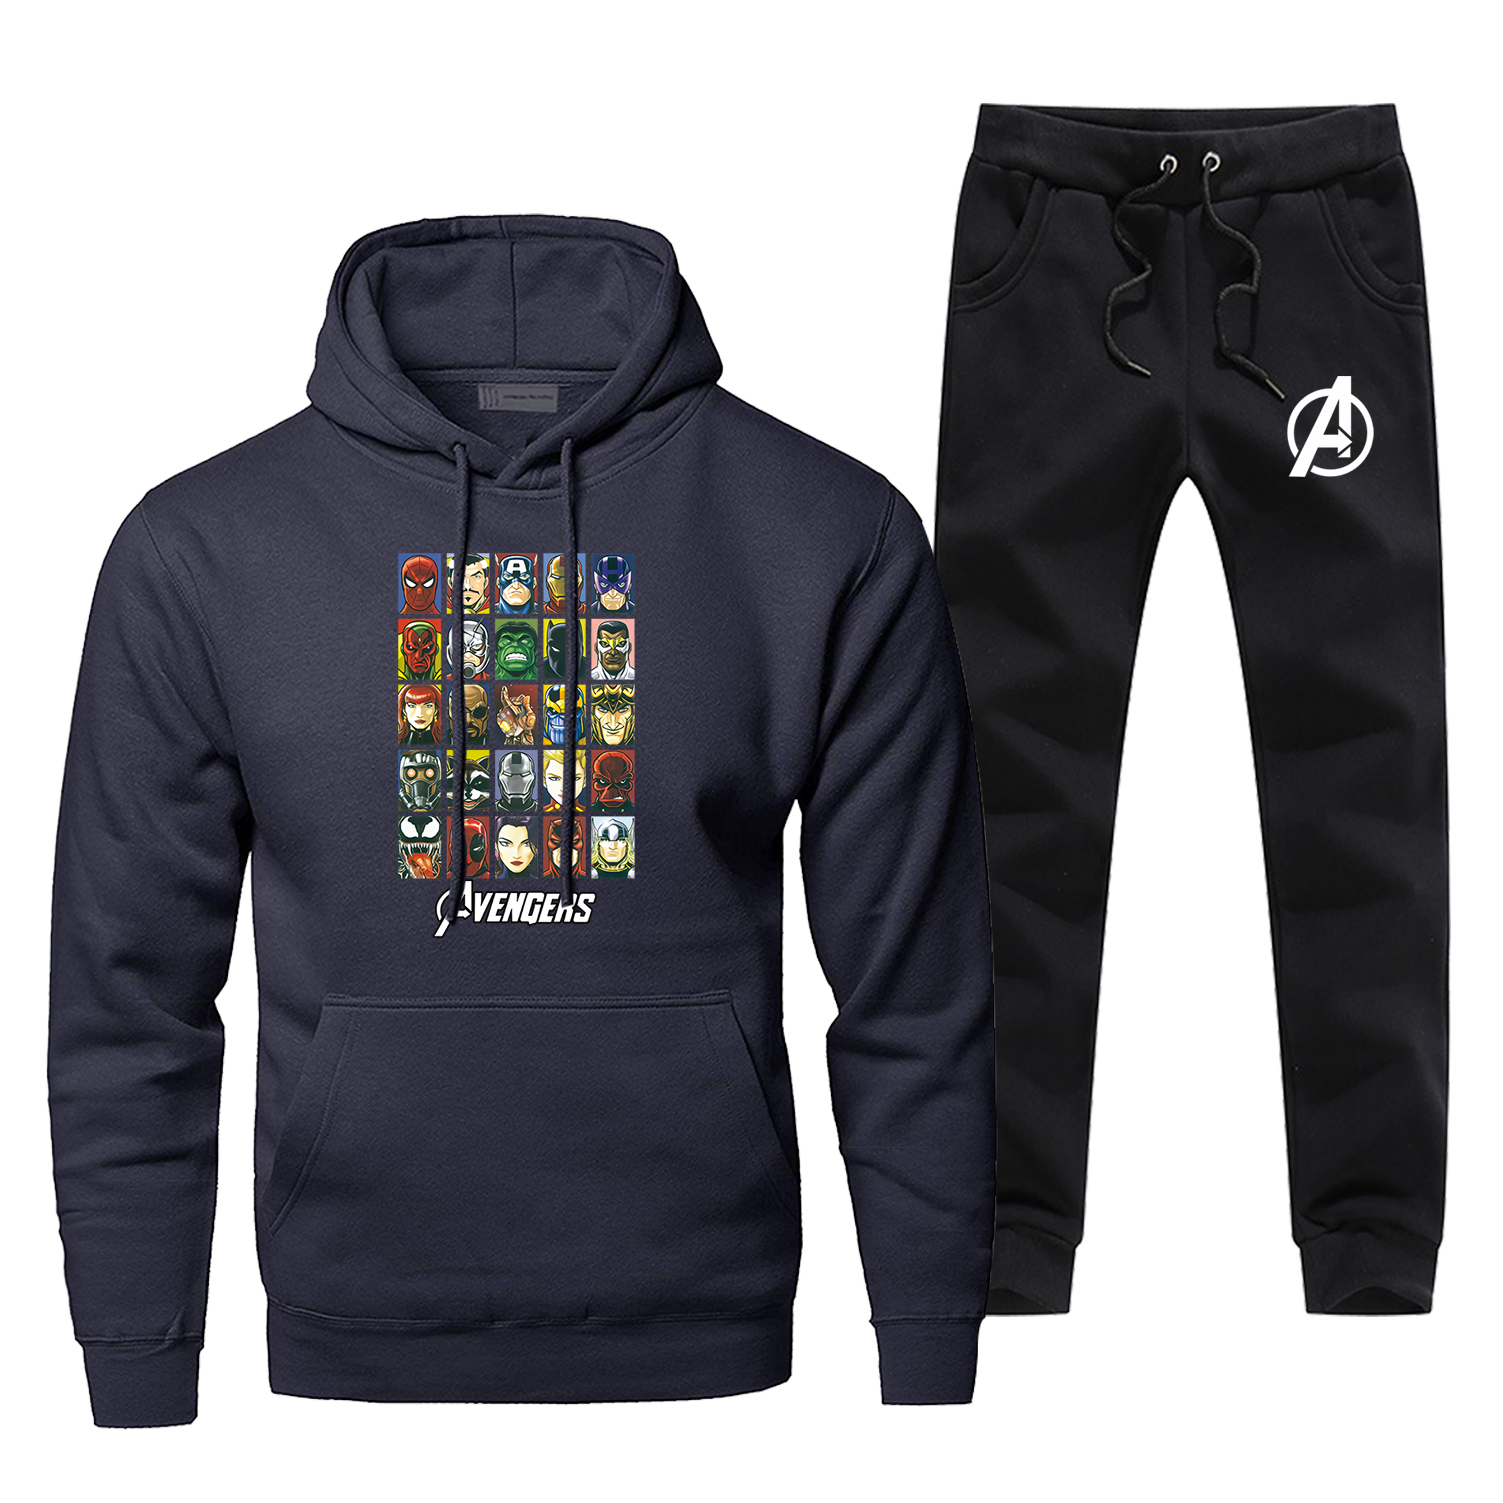 Fashion Marvel Sweatshirt Men Marvel Avengers Endgame Print Hoodies+pants 2piece Sets Harajuku Sportswear Hip Hop Streetwear